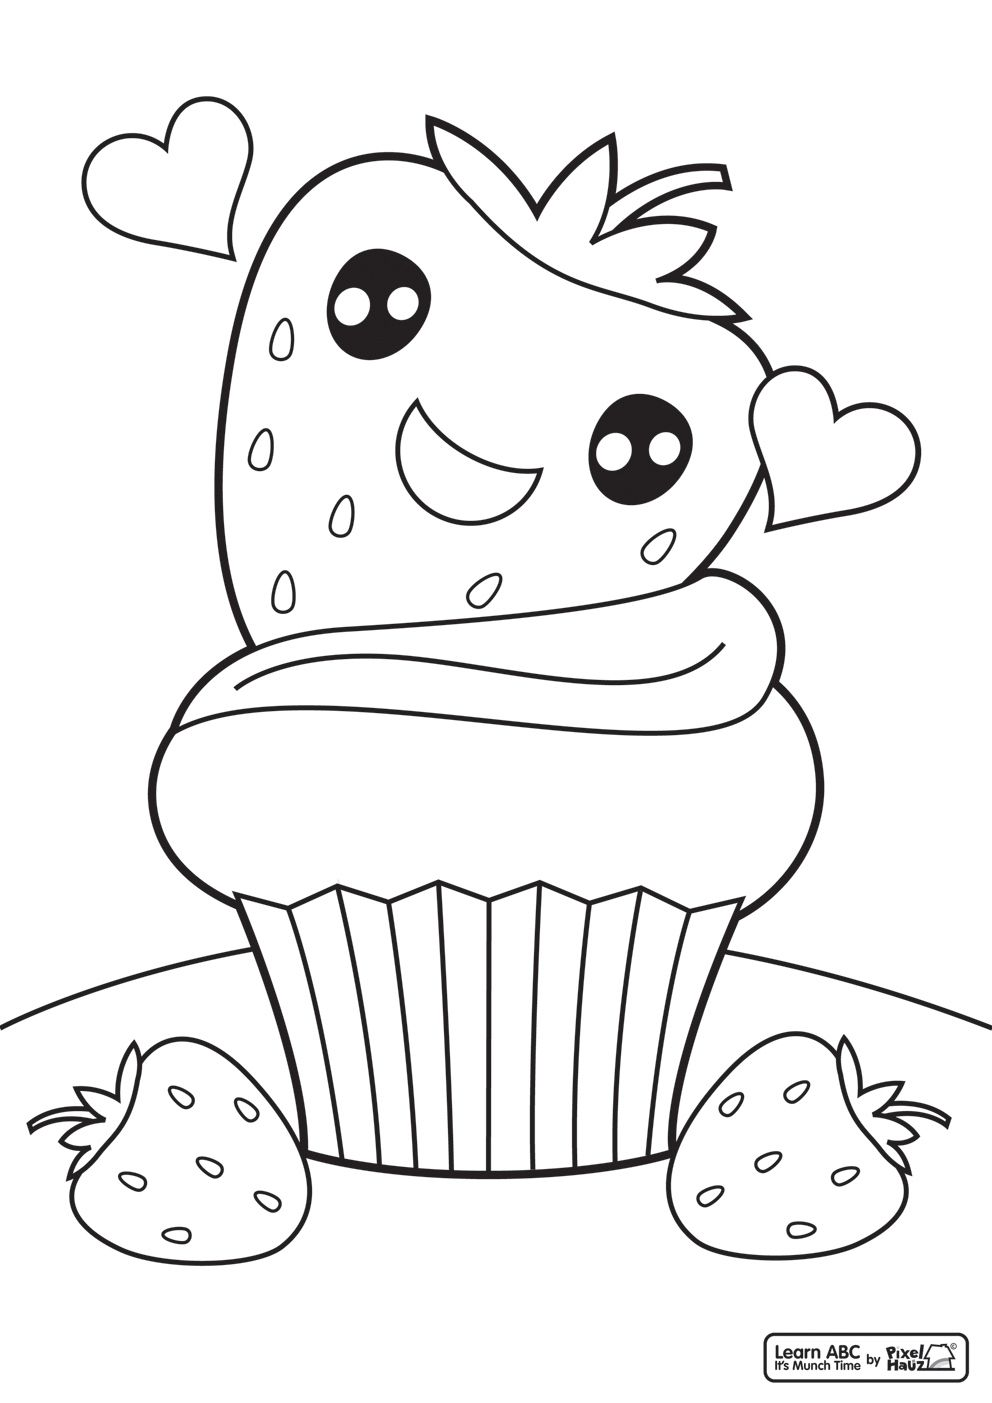 Colouring Images Of Cupcake : Cute Cupcake Coloring Pages - Coloring Home